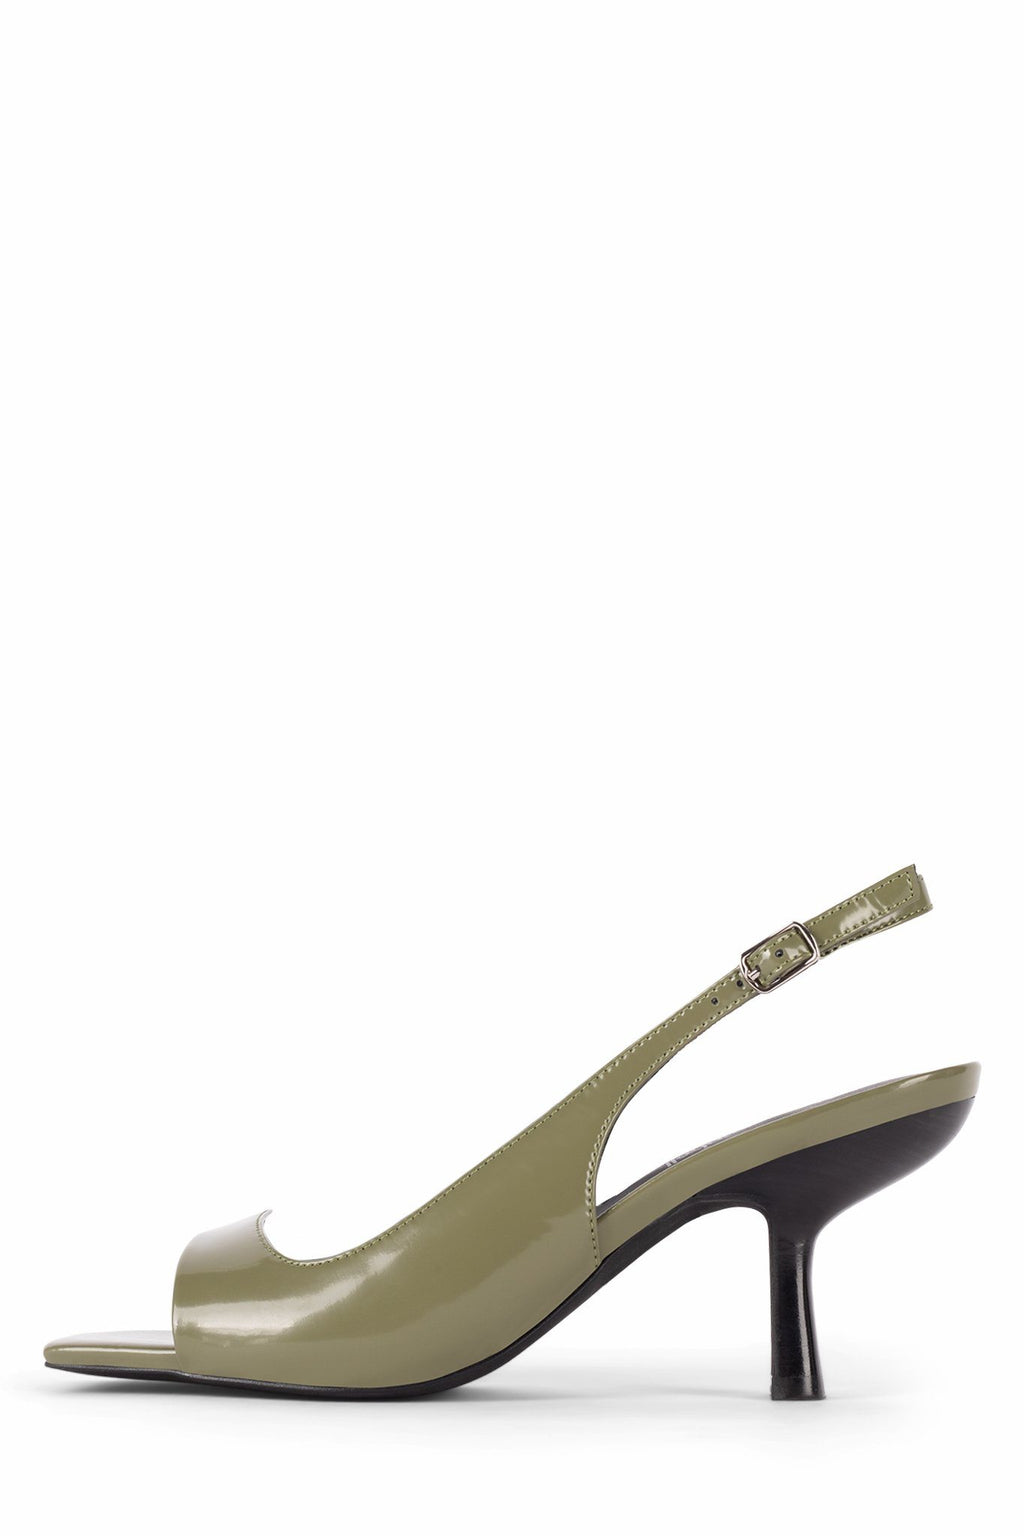 DESSERT Heeled Sandal STRATEGY Olive Box 6